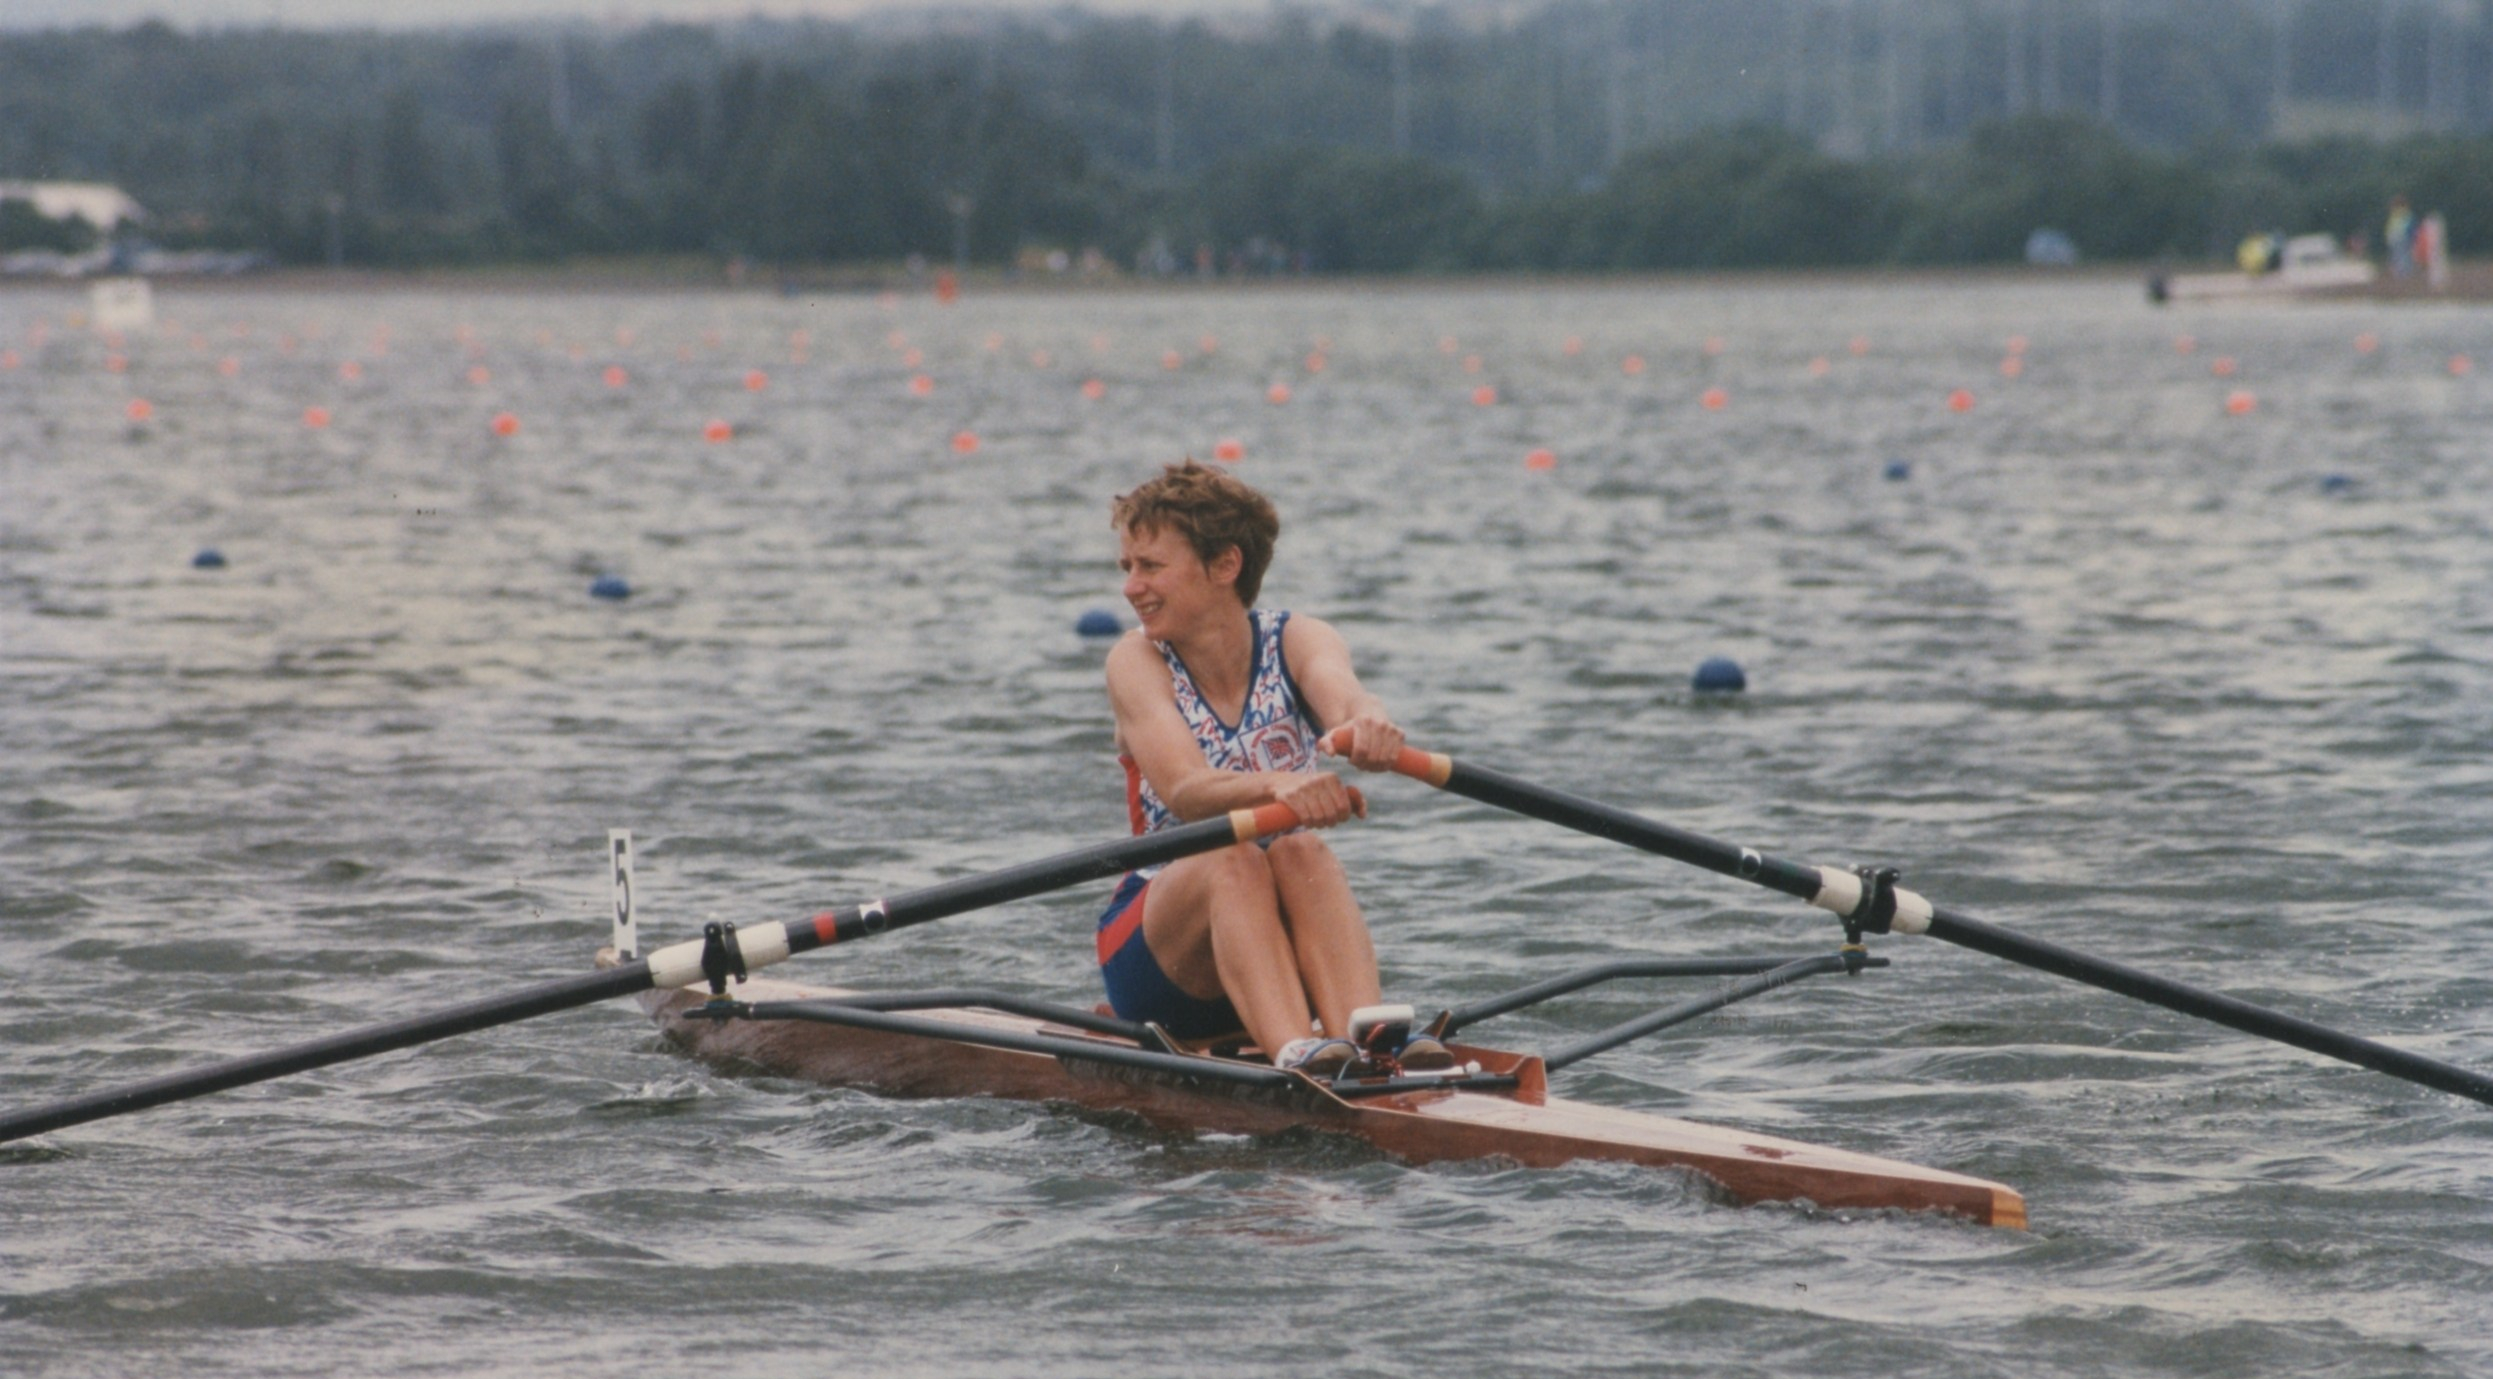 Single sculler in squiggly kit